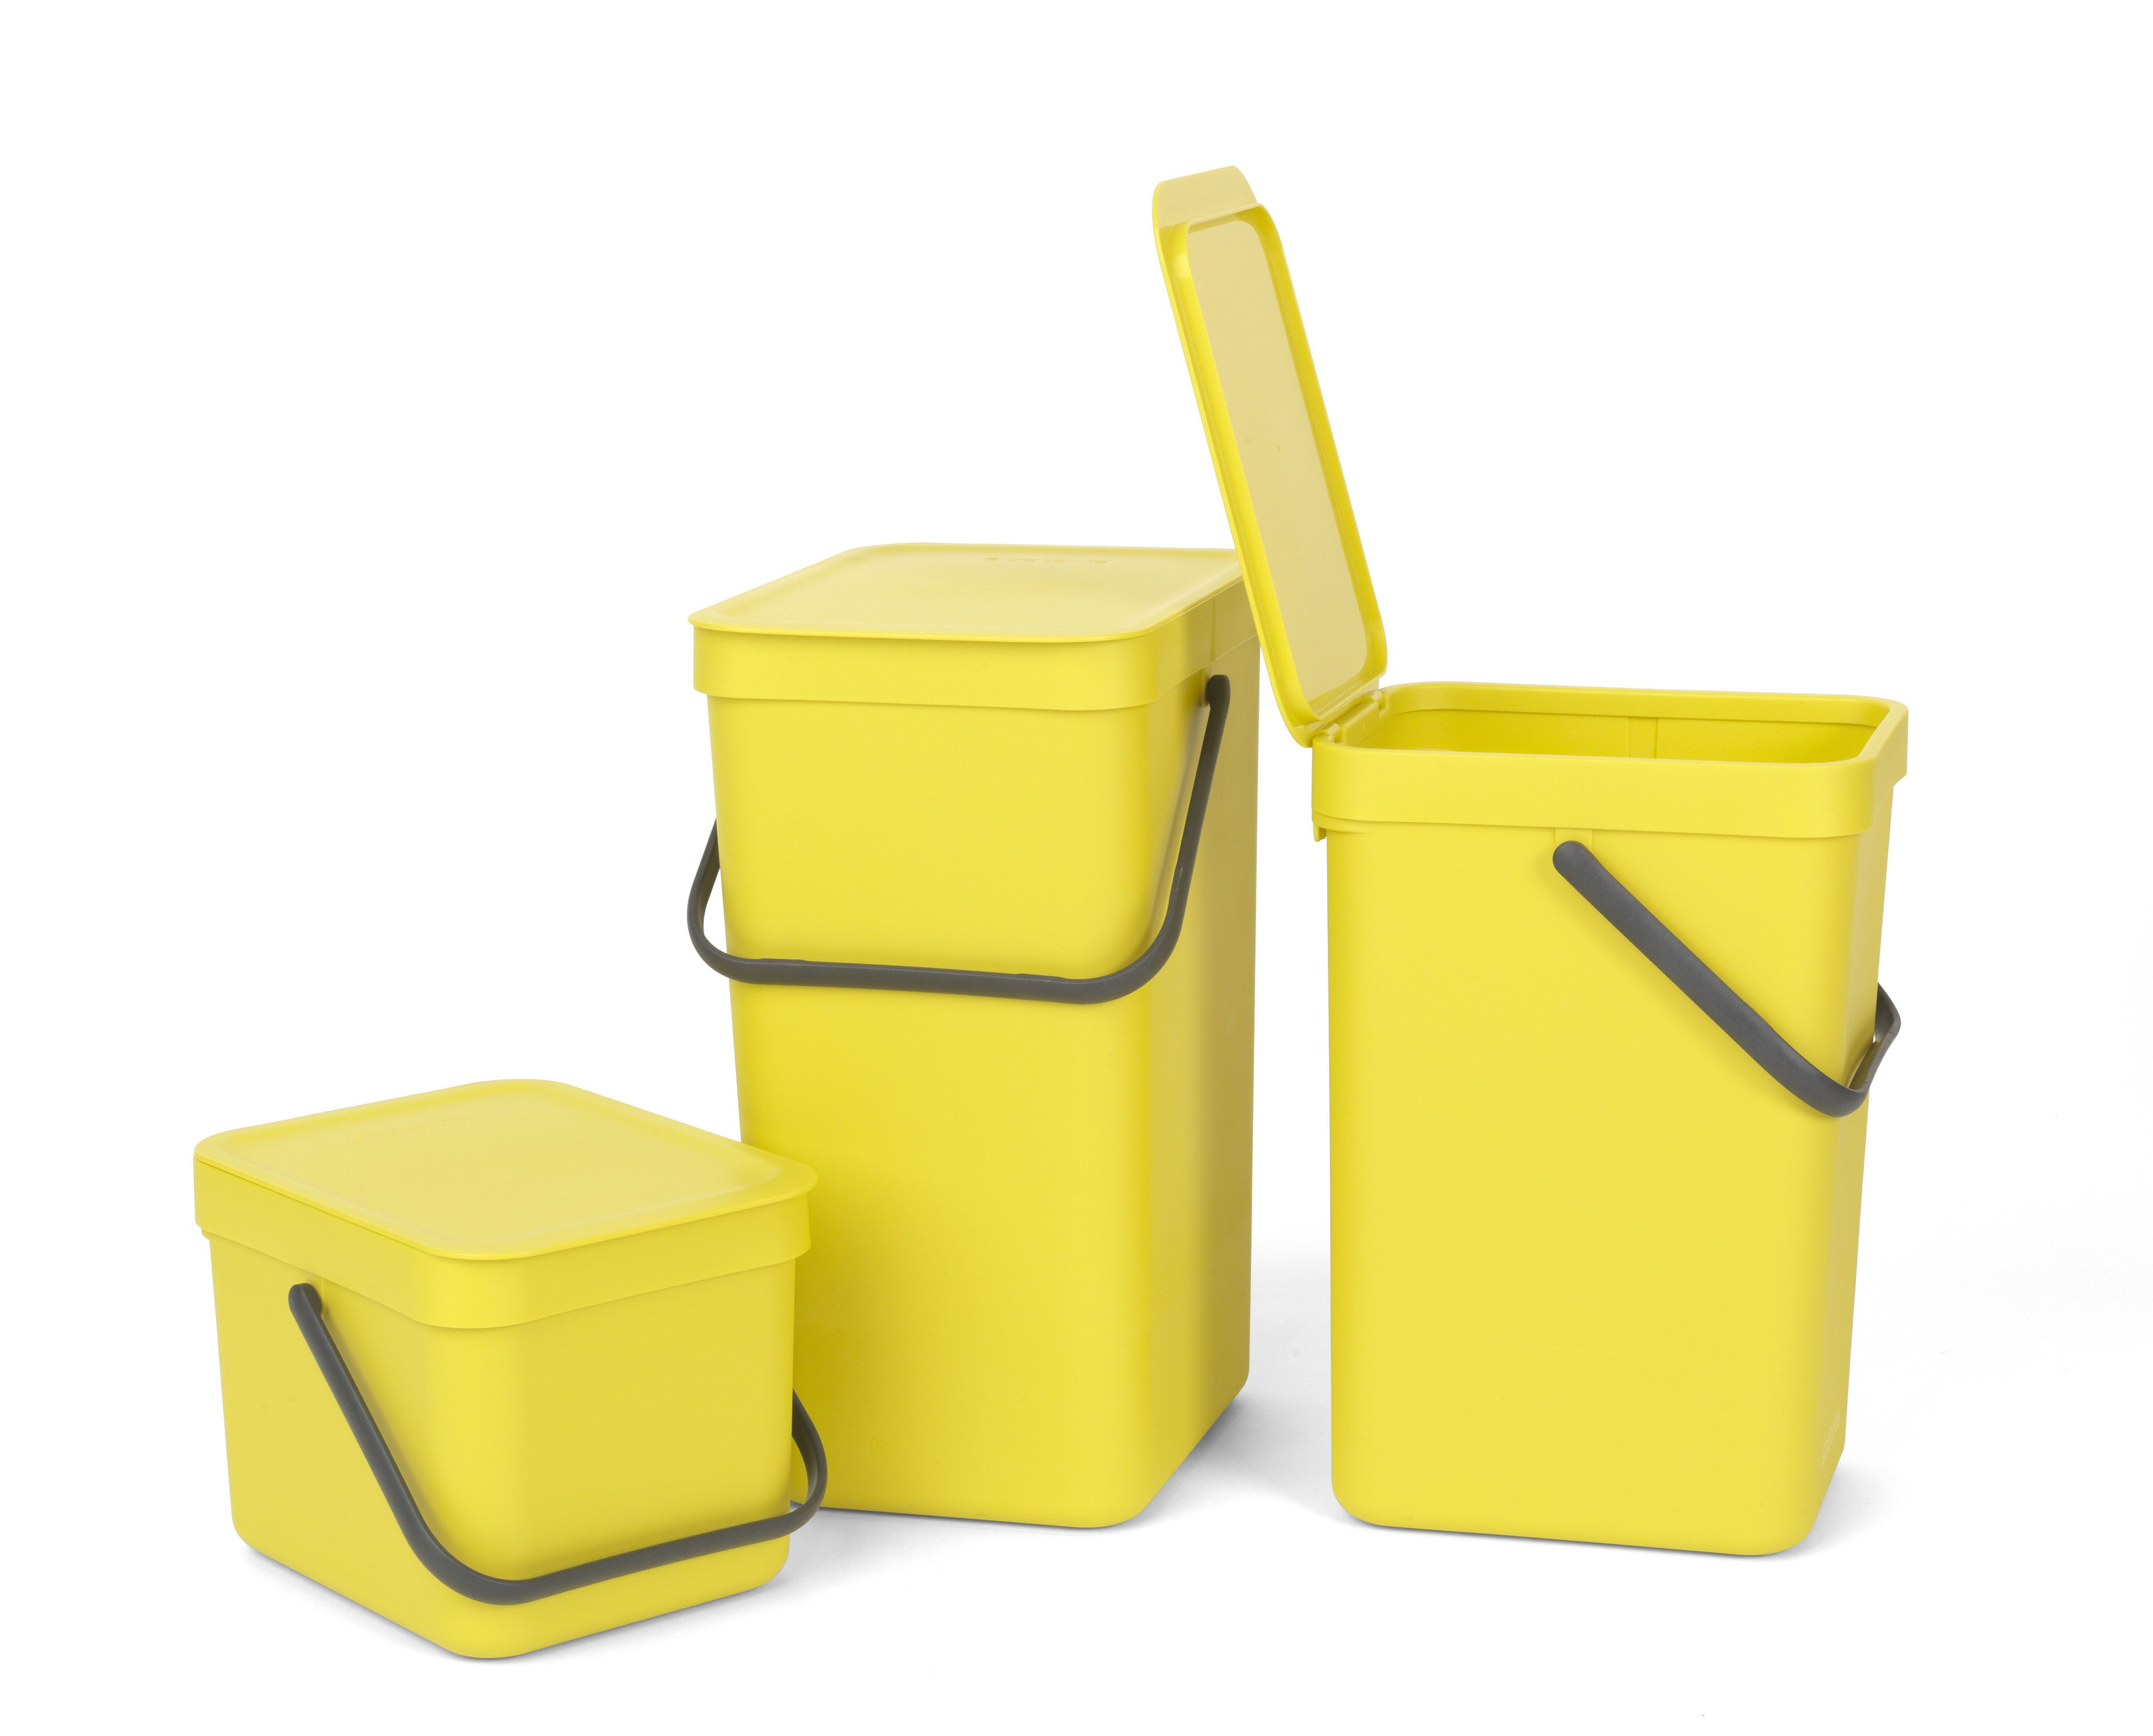 Sort Go Waste Containers for Brabantia by the Value Factory team